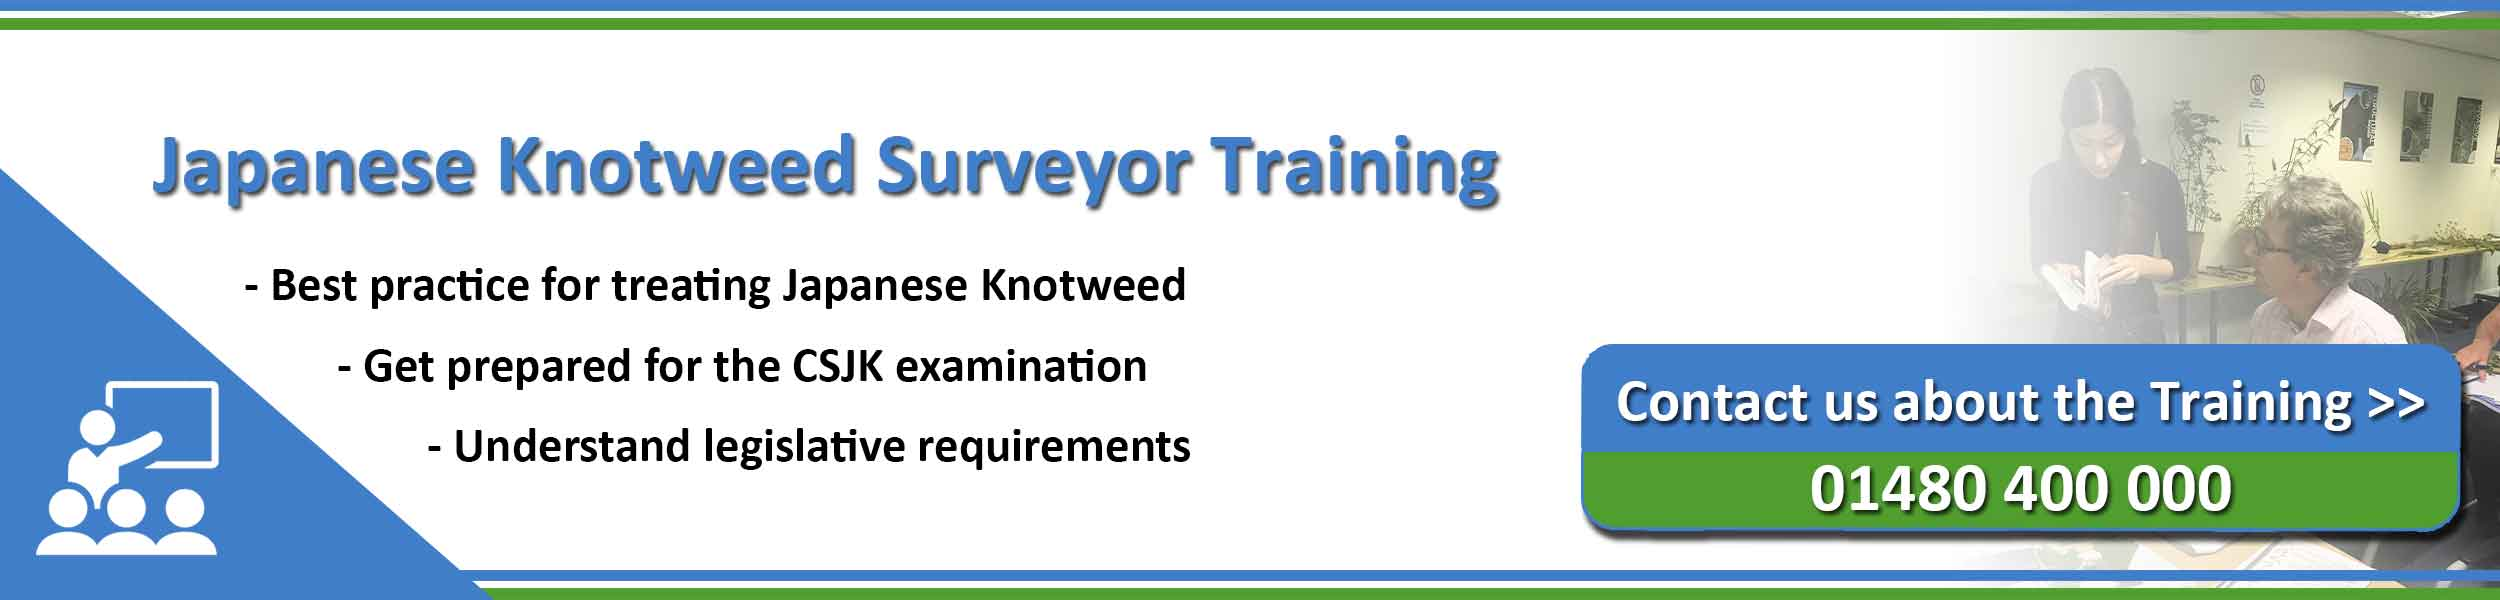 Japanese Knotweed Surveyor Training - Property Care Association